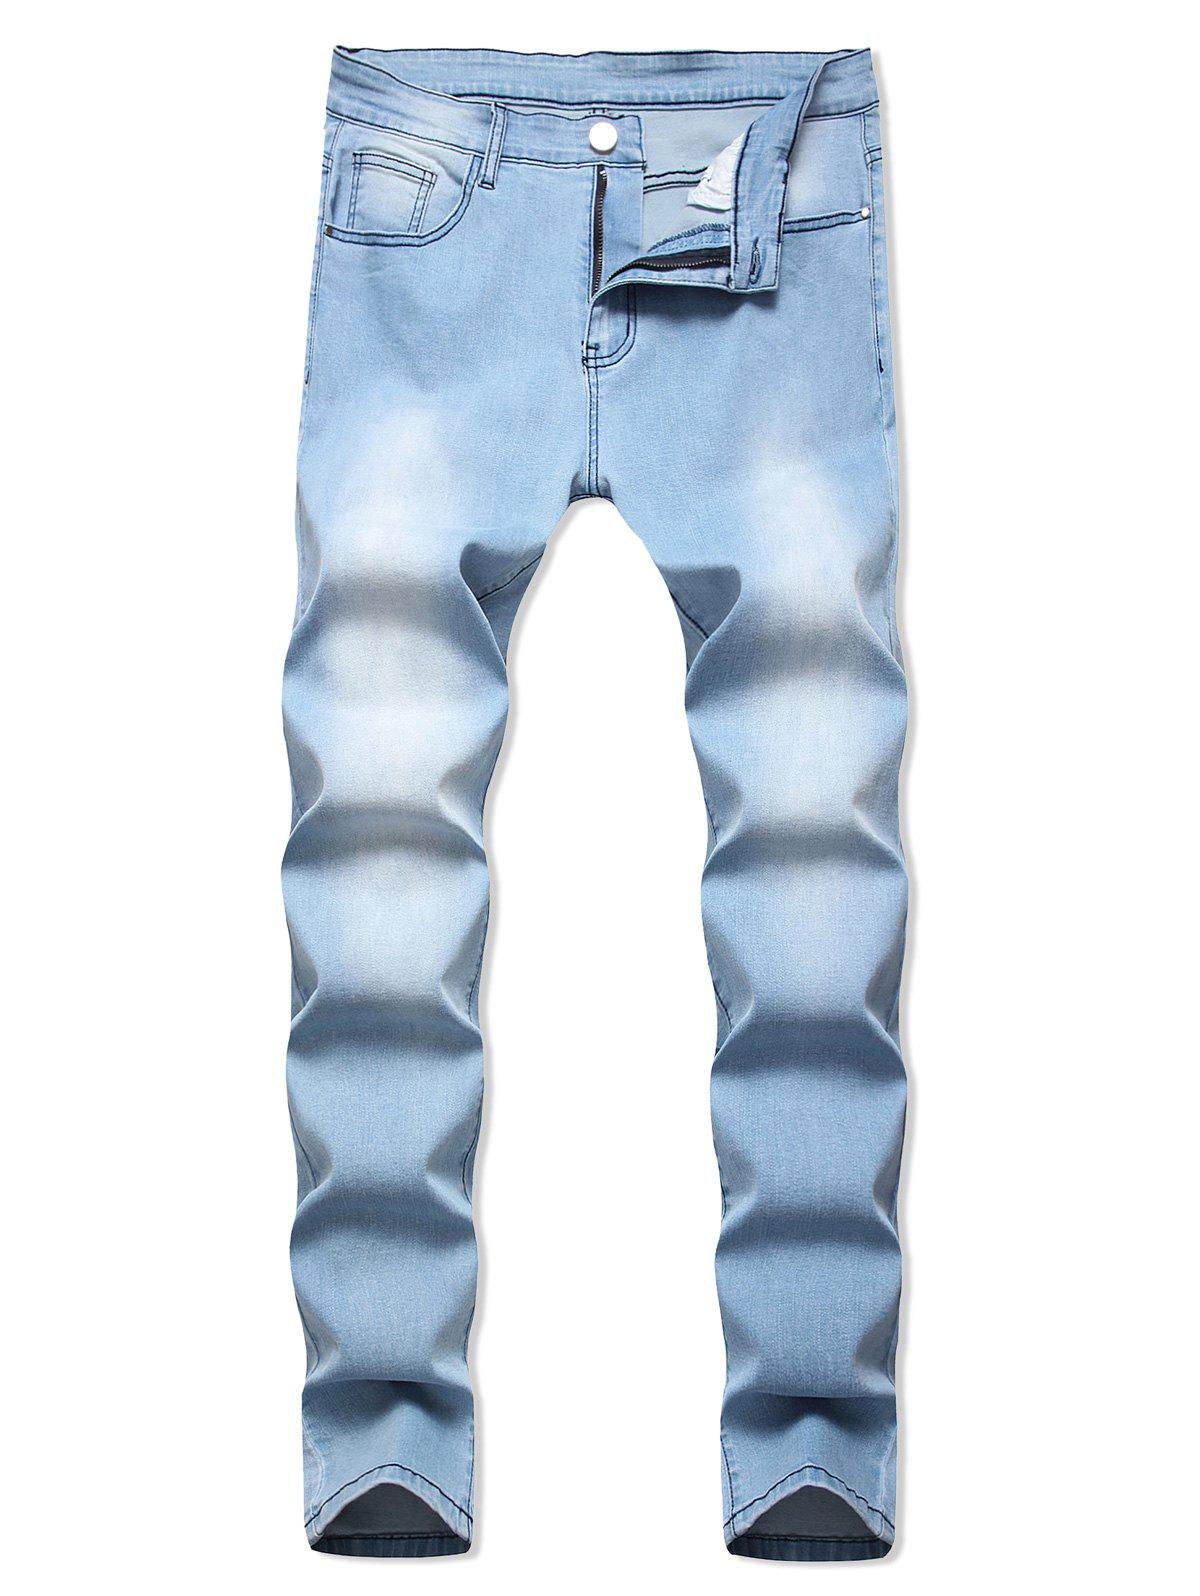 Light Wash Zip Fly Casual Jeans - JEANS BLUE 40